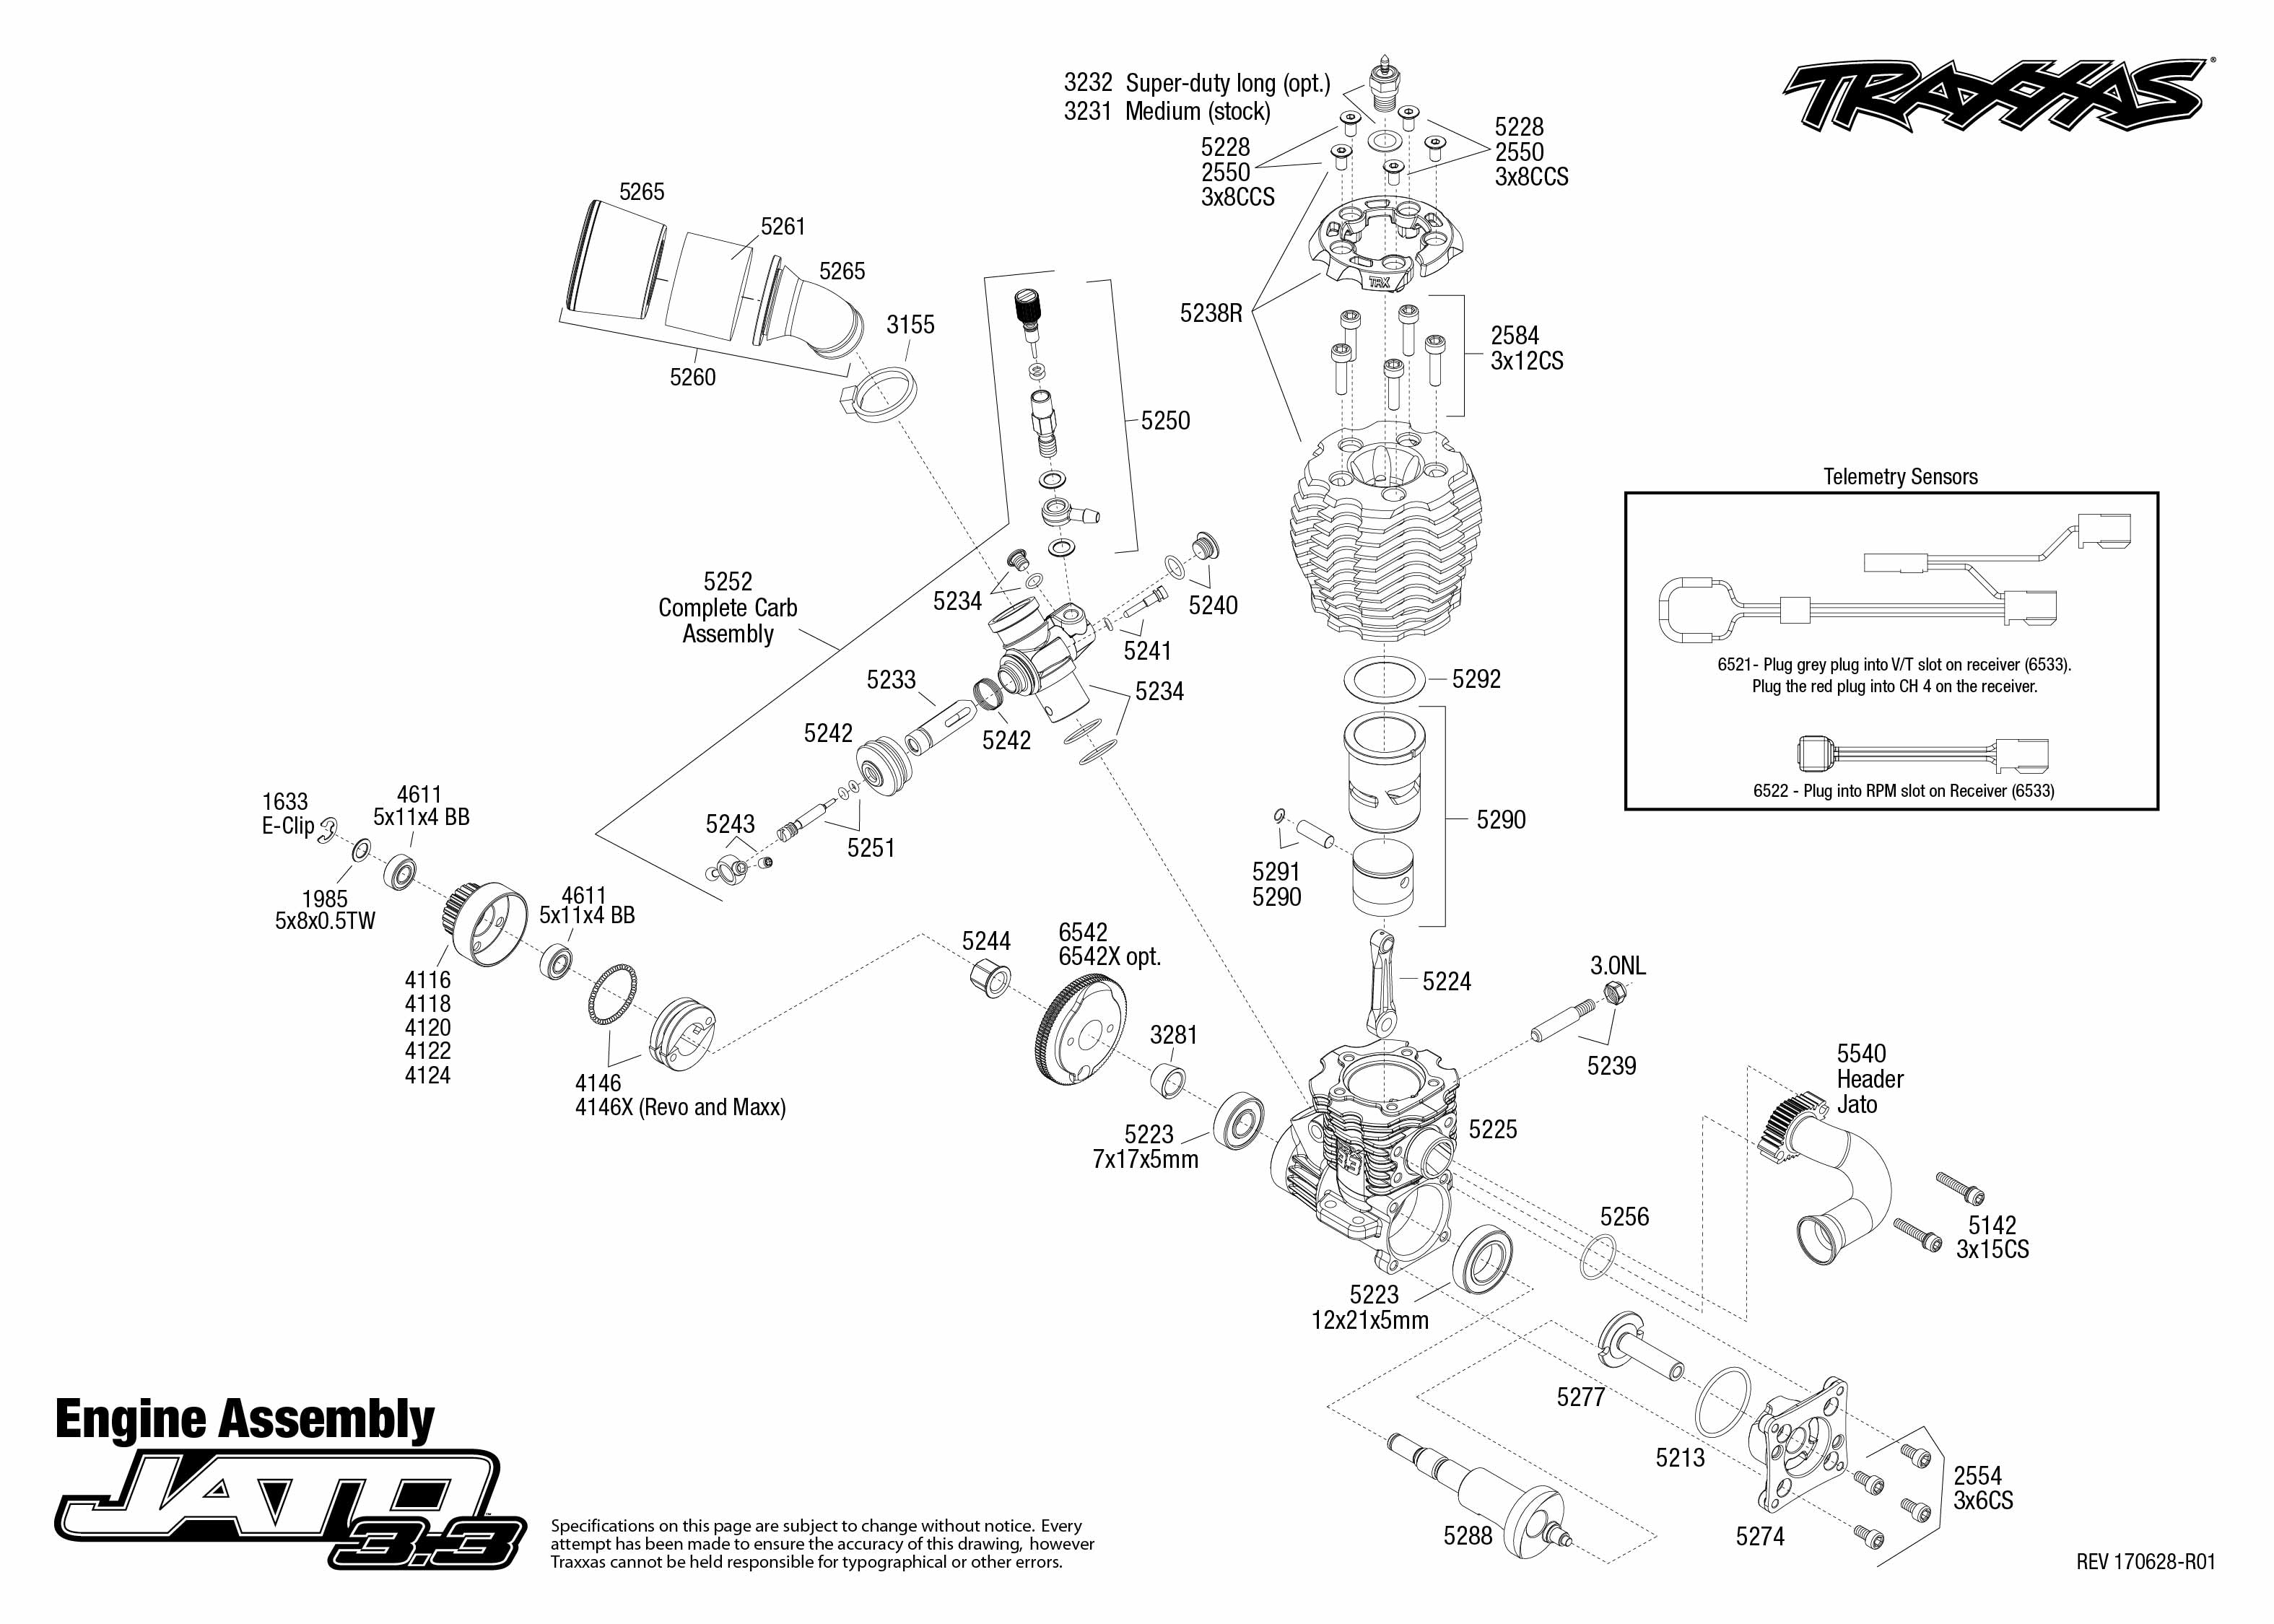 toyota 15 engine diagram jato 3.3 (55077-3) engine assembly exploded view | traxxas